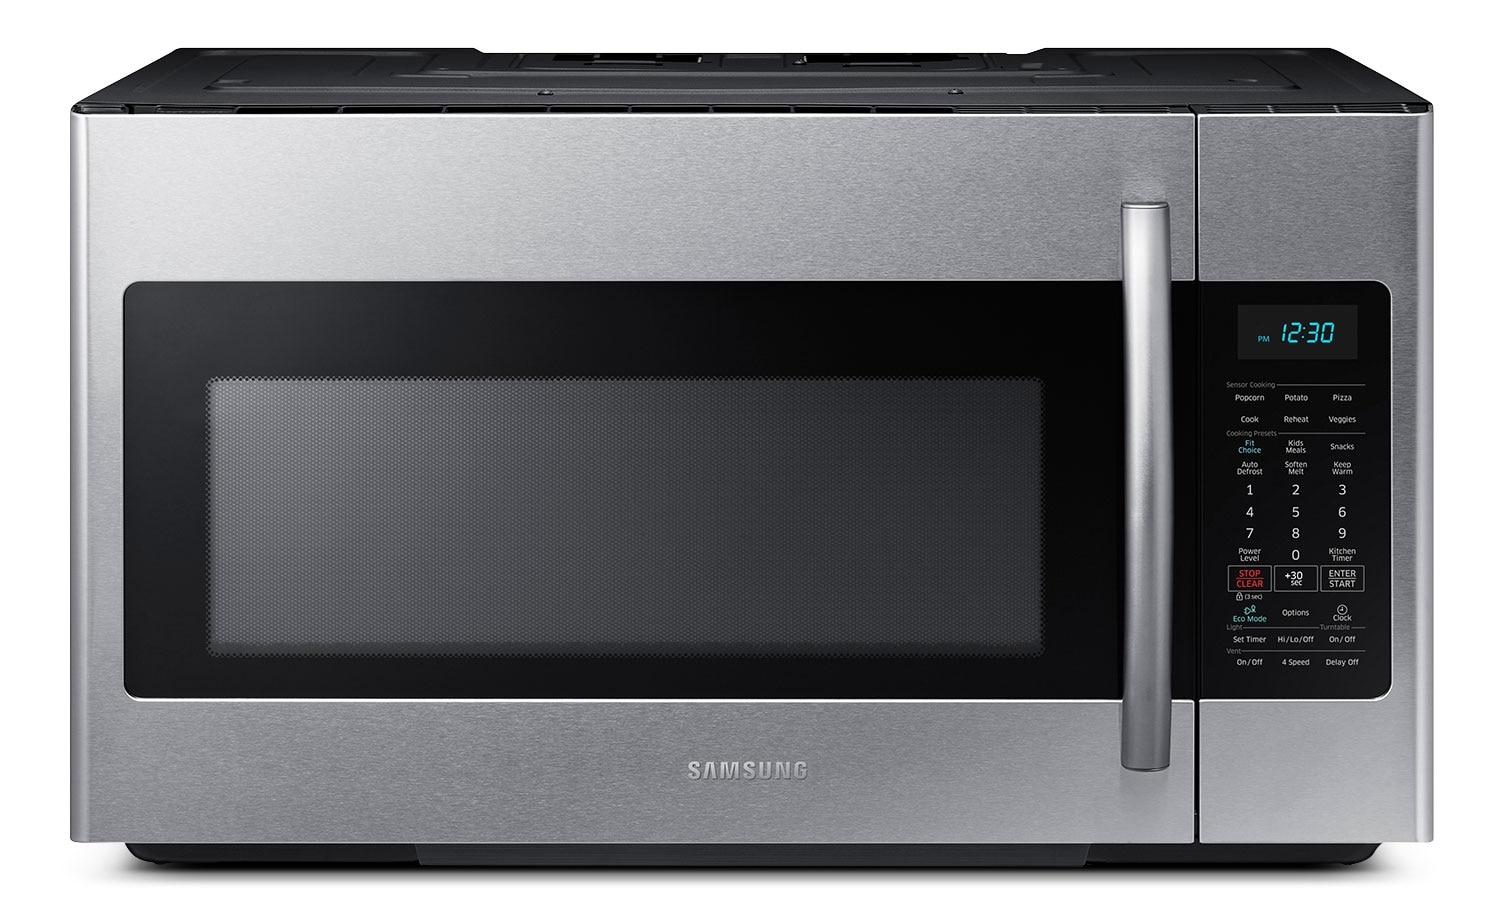 Cooking Products - Samsung 1.8 Cu. Ft. Over-the-Range Microwave – Stainless Steel